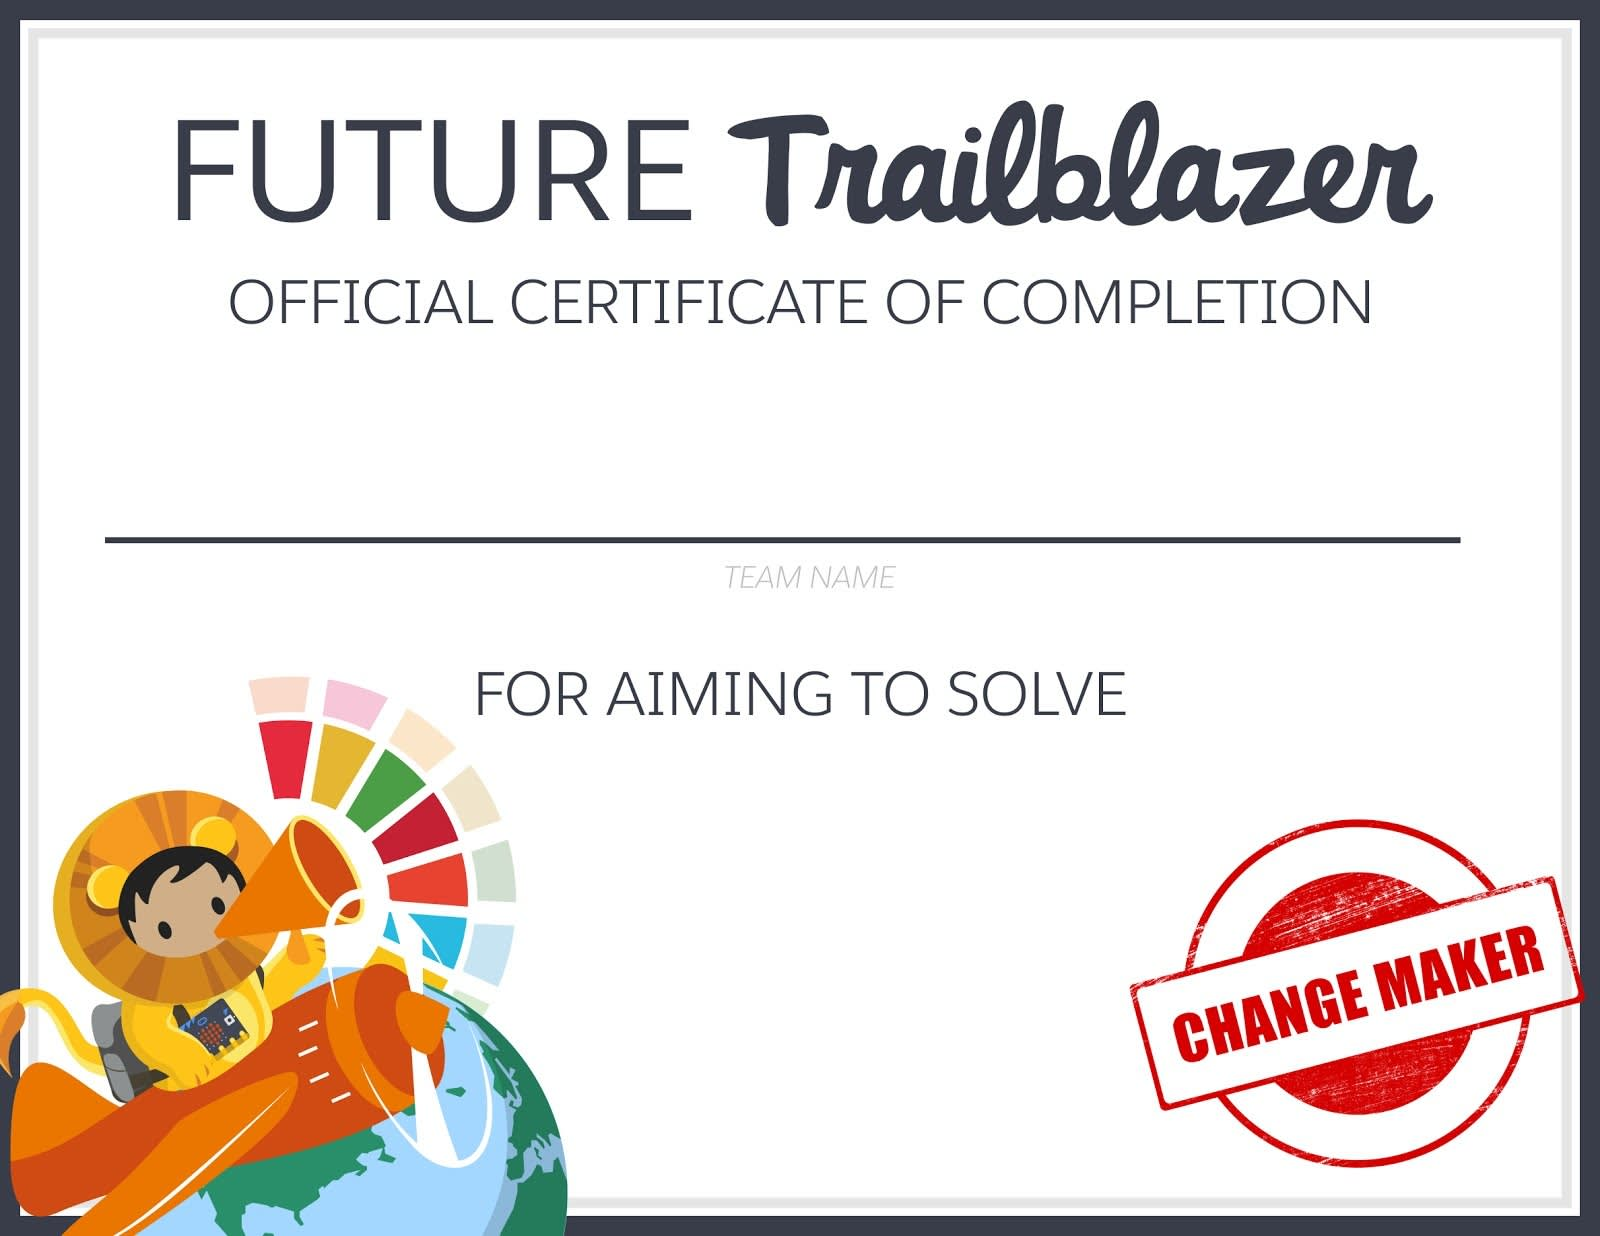 Blank version of the Future Trailblazer Official Certificate of Completion.